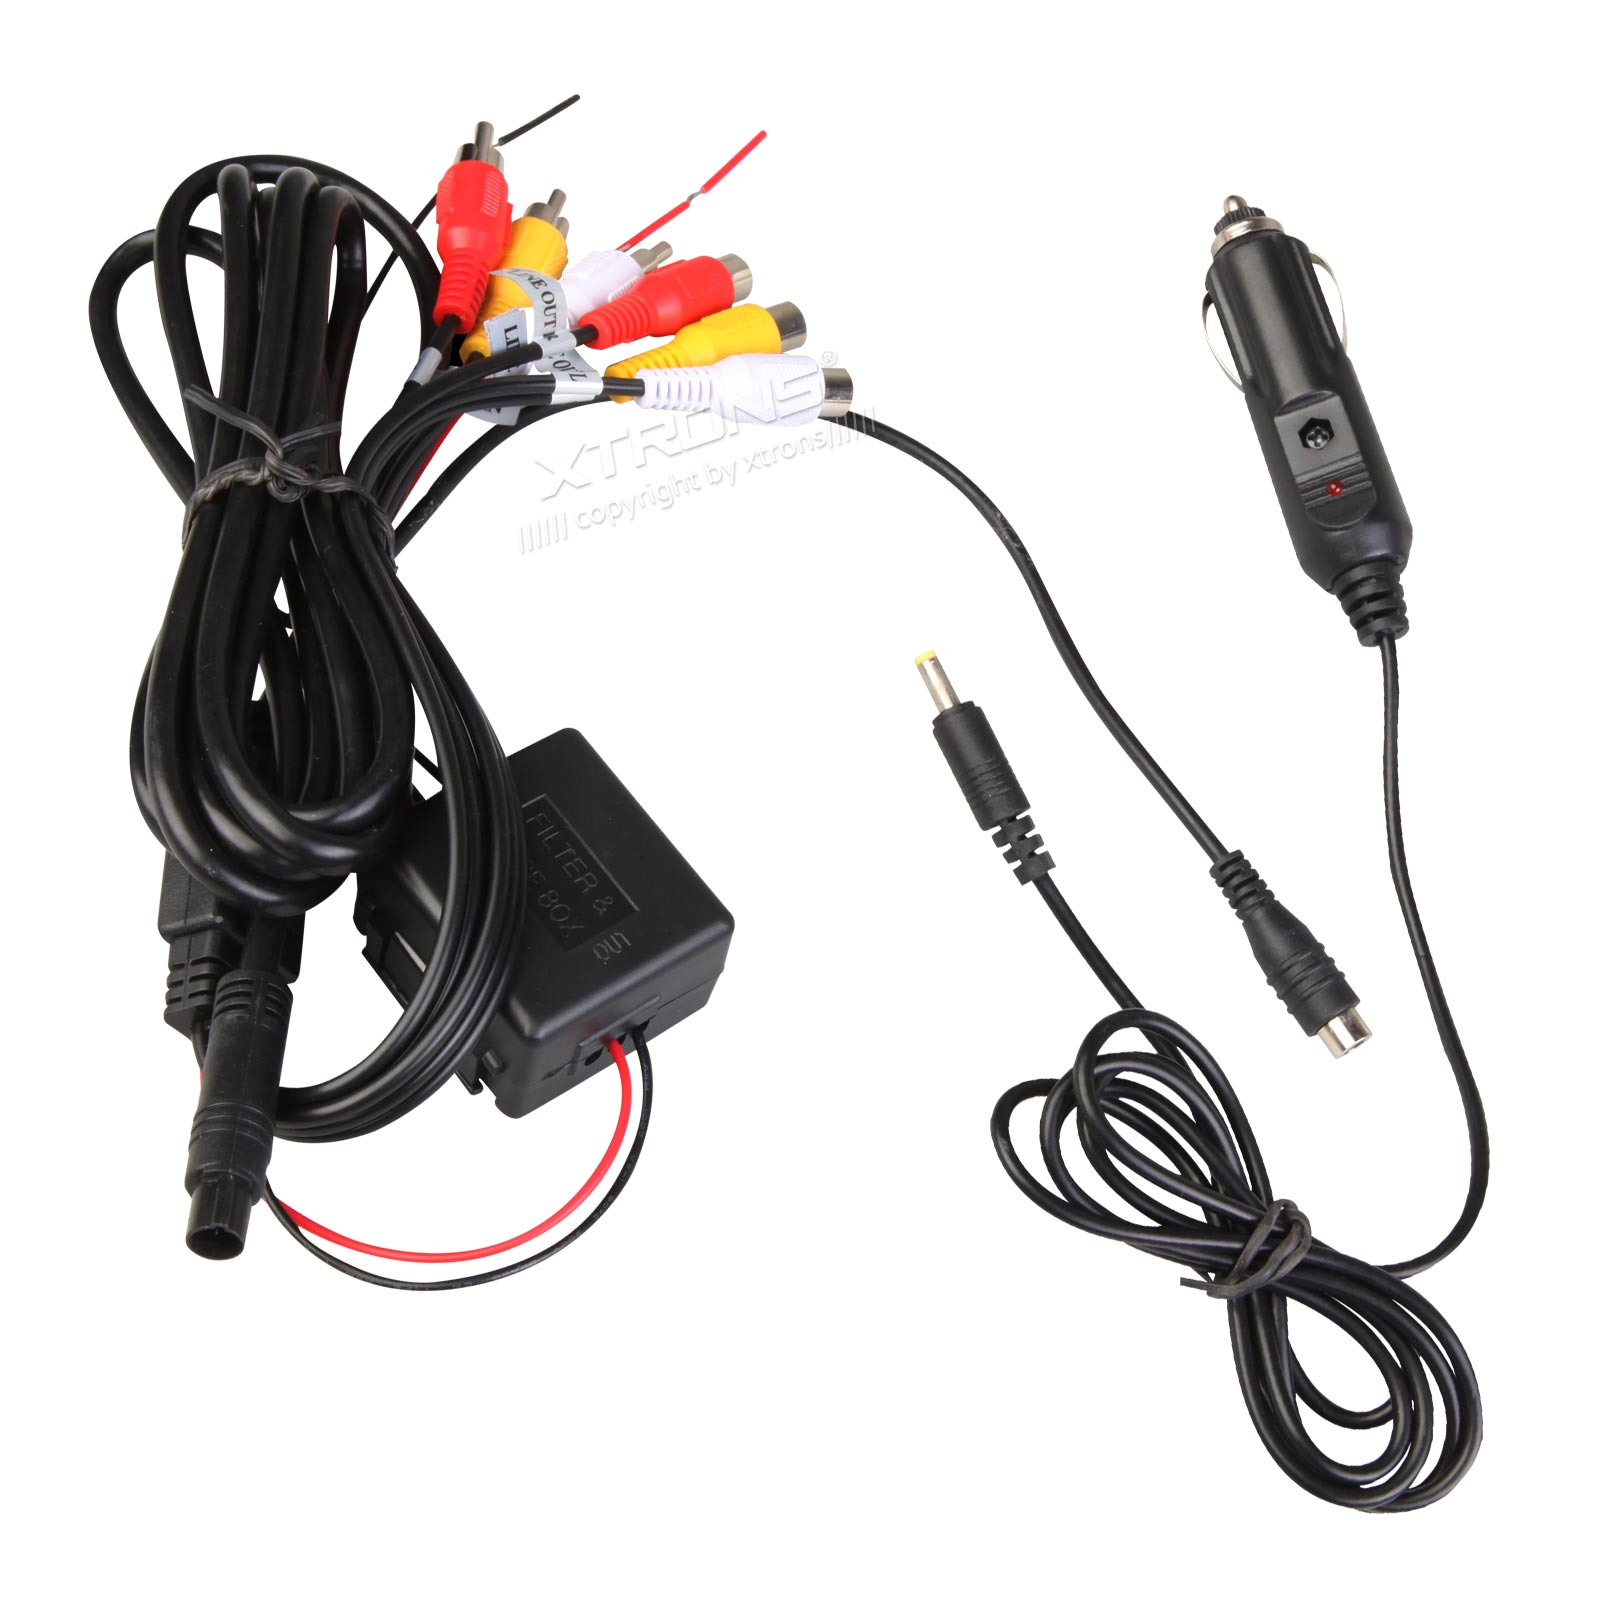 Cl004 In Car Cigarette Charger For Headrest Dvd Player Twin Screen Wiring Diagram Prevnext